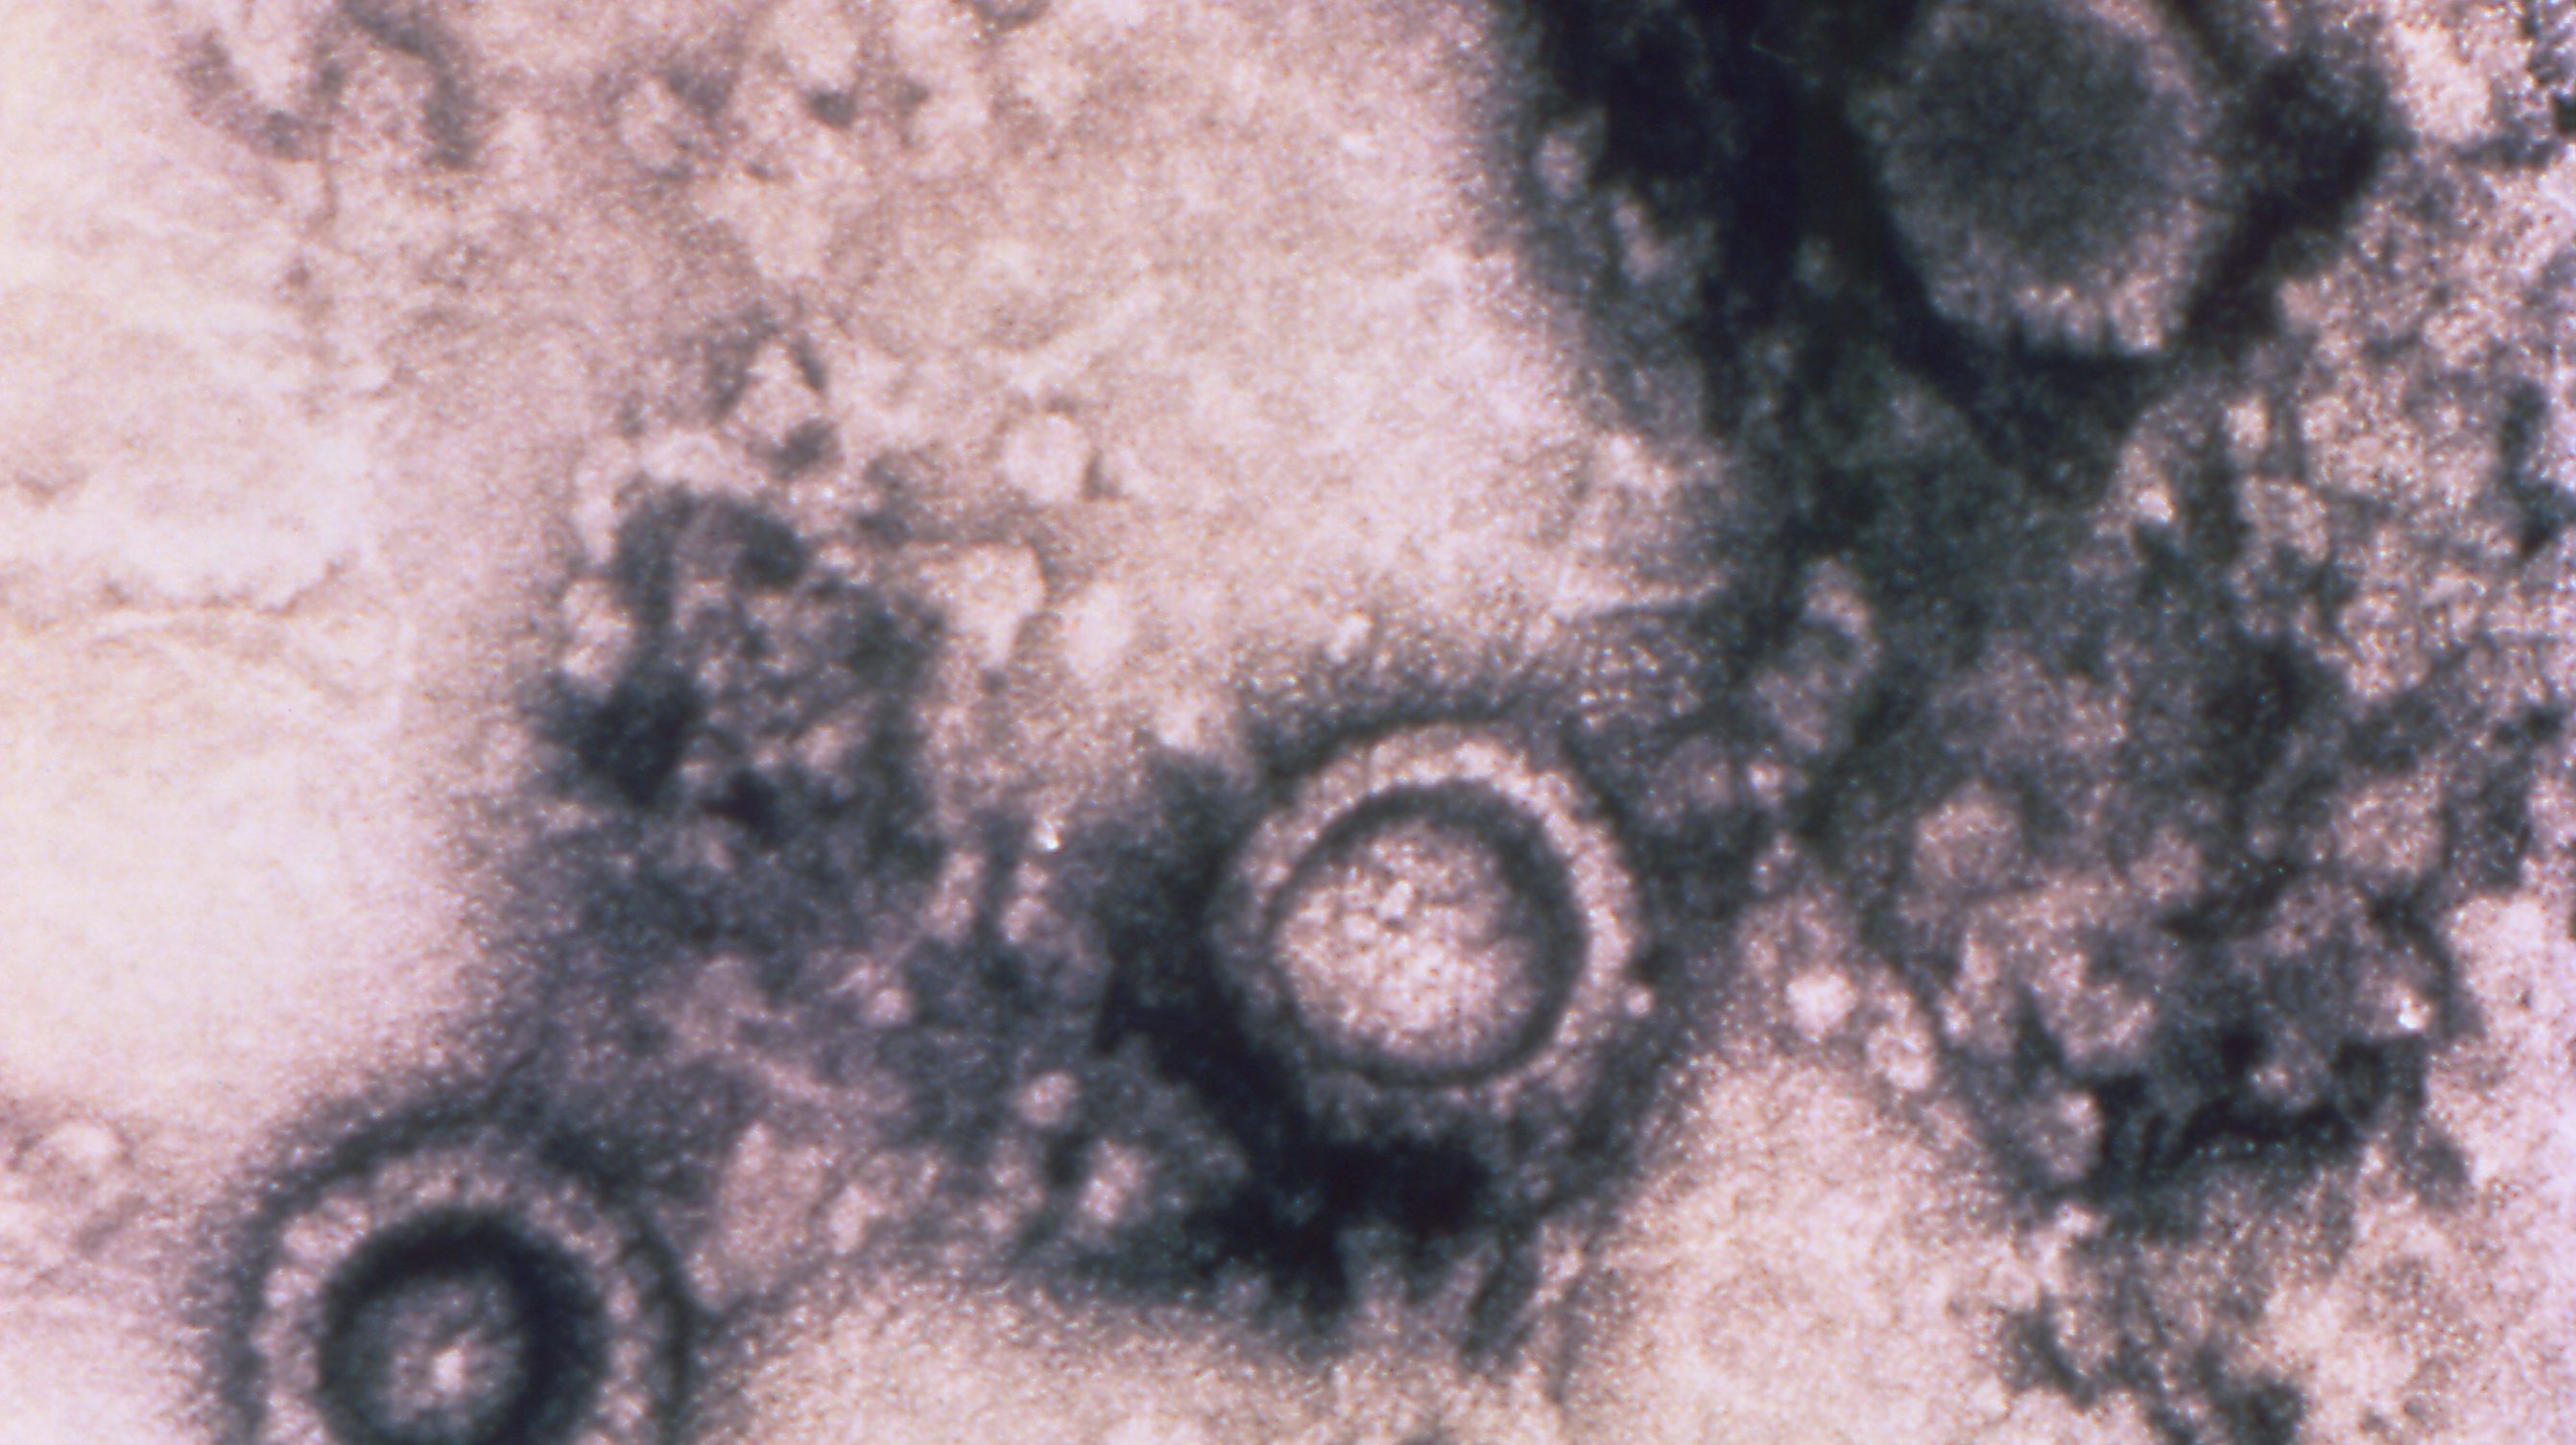 This digitally colorized transmission electron microscopic (TEM) image, from a pelleted specimen, depicts three icosahedral-shaped herpes virus particles. The staining technique used to process this specimen revealed virions with a dark center, where the stain has penetrated, indicated a capsid with no DNA, while a virion with a light center, where there was no stain penetration, indicated a nucleocapsid, consisting of a capsid, plus its DNA core.